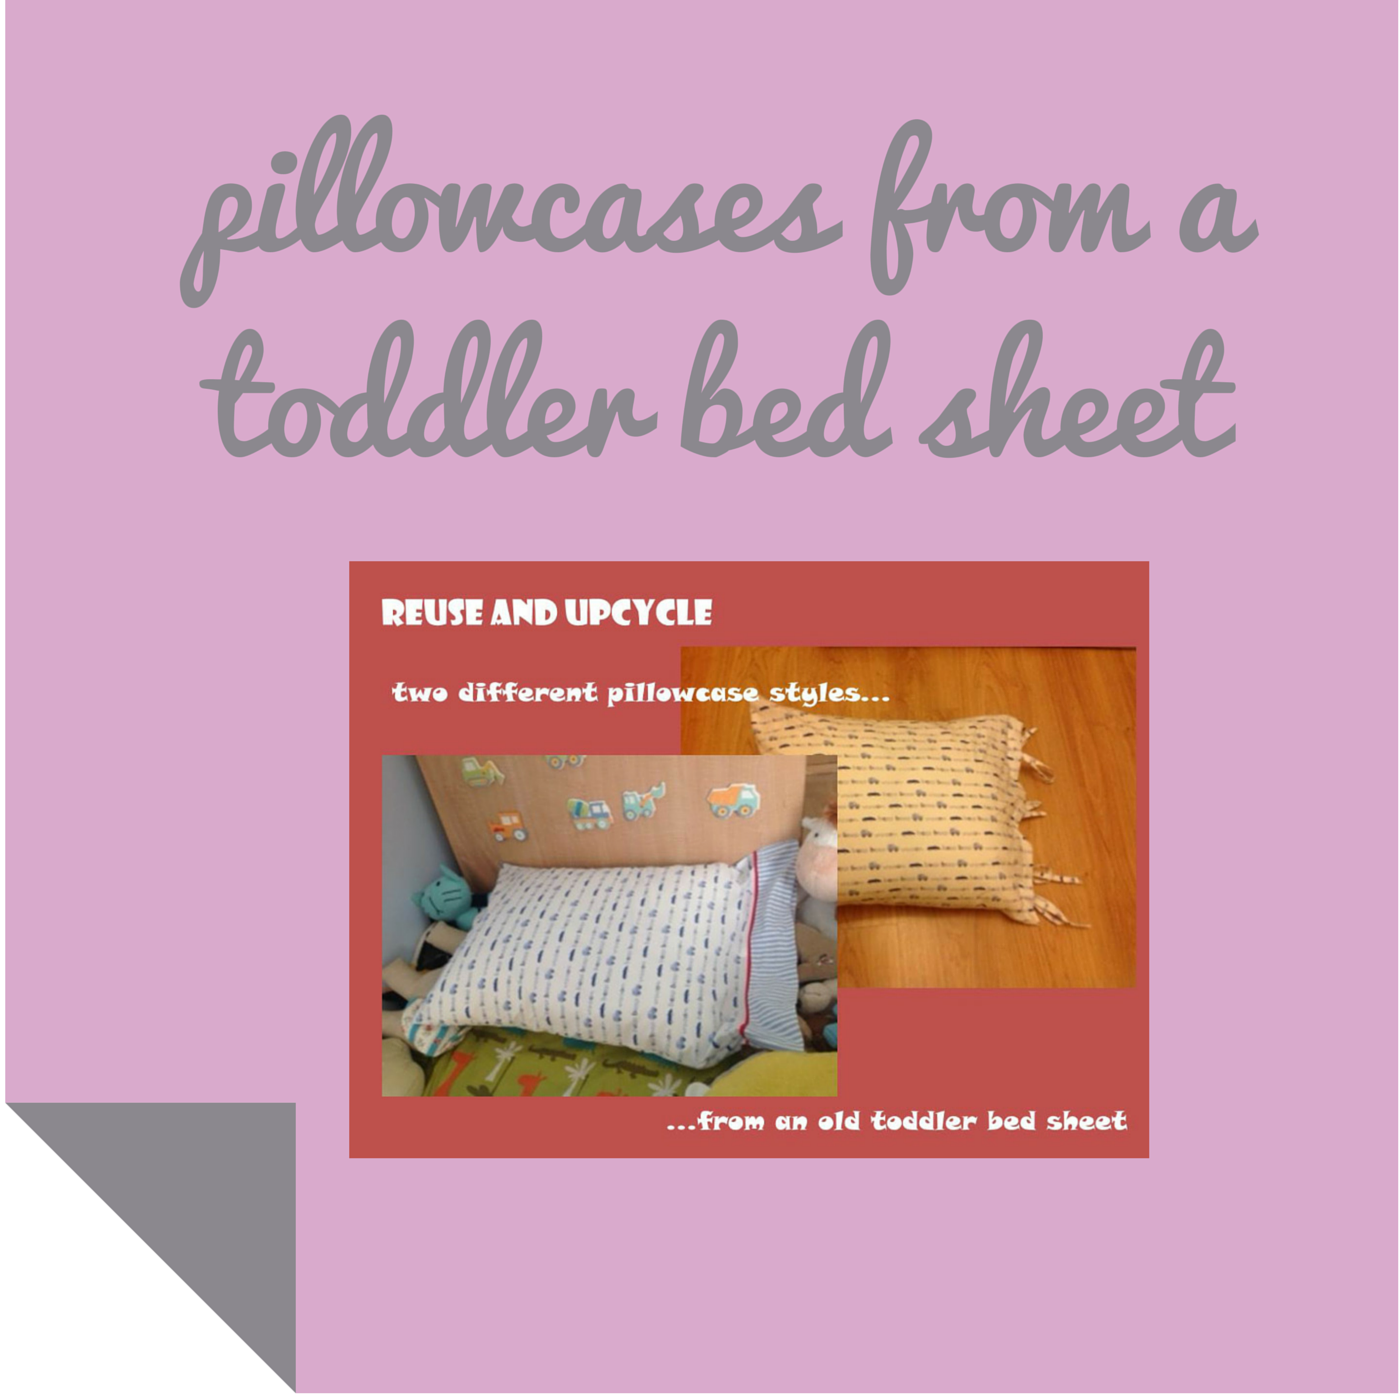 http://keepingitrreal.blogspot.com.es/2014/07/reuse-and-upcycle-pillow-cases-from.html